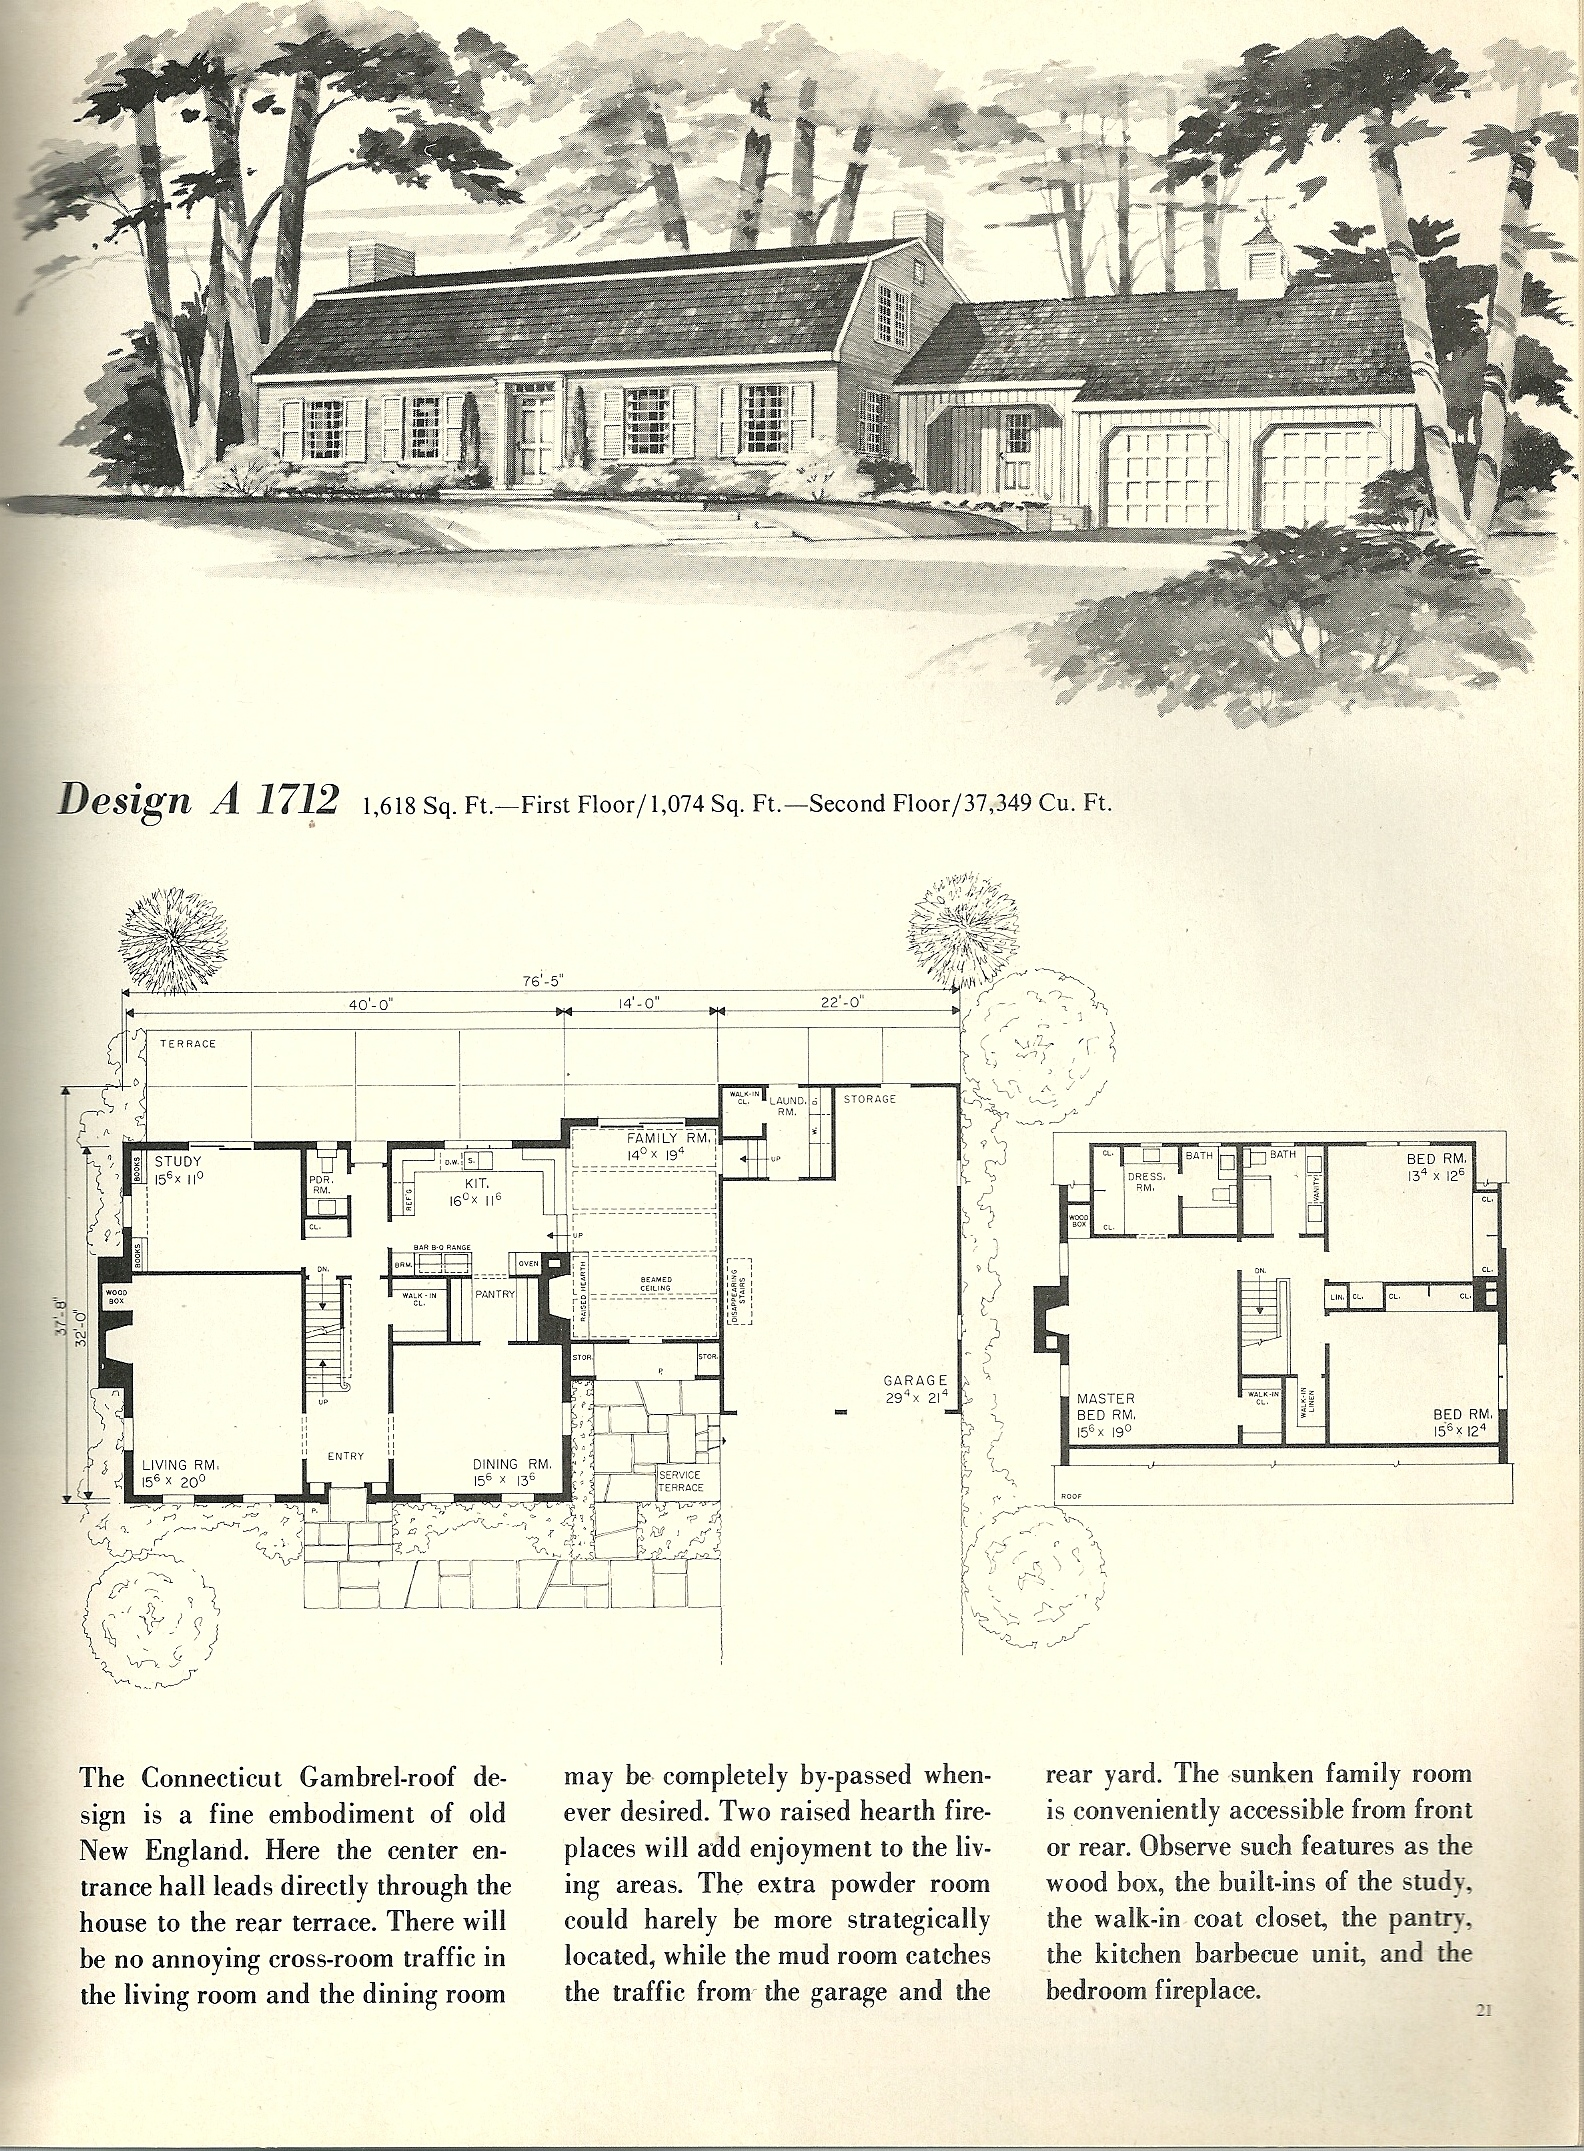 Vintage house plans 1712 antique alter ego for 1970s house floor plans